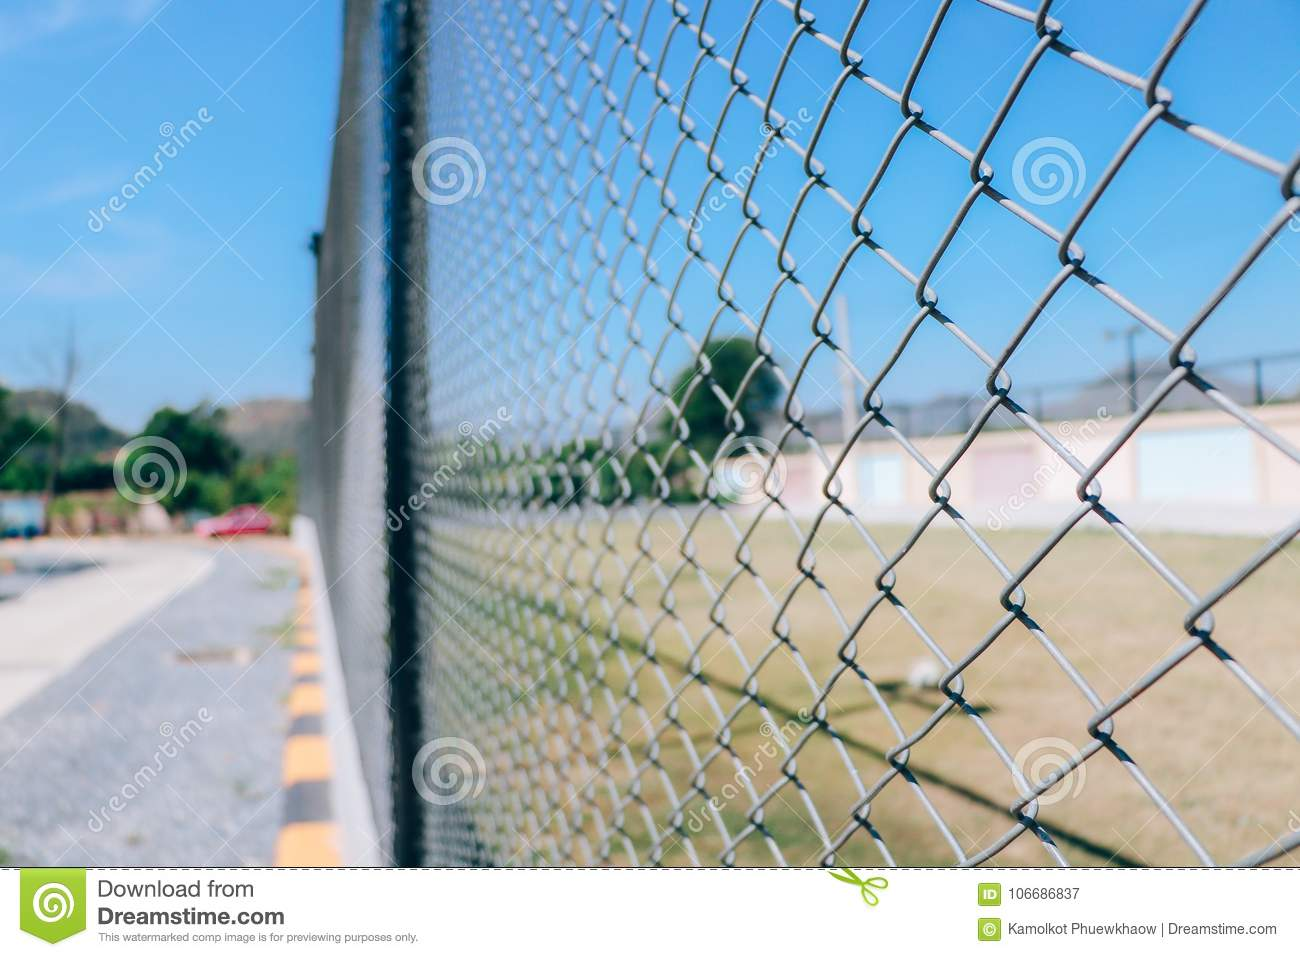 Wire Fence Or Metal Net Of Football Field Stock Image - Image of ...